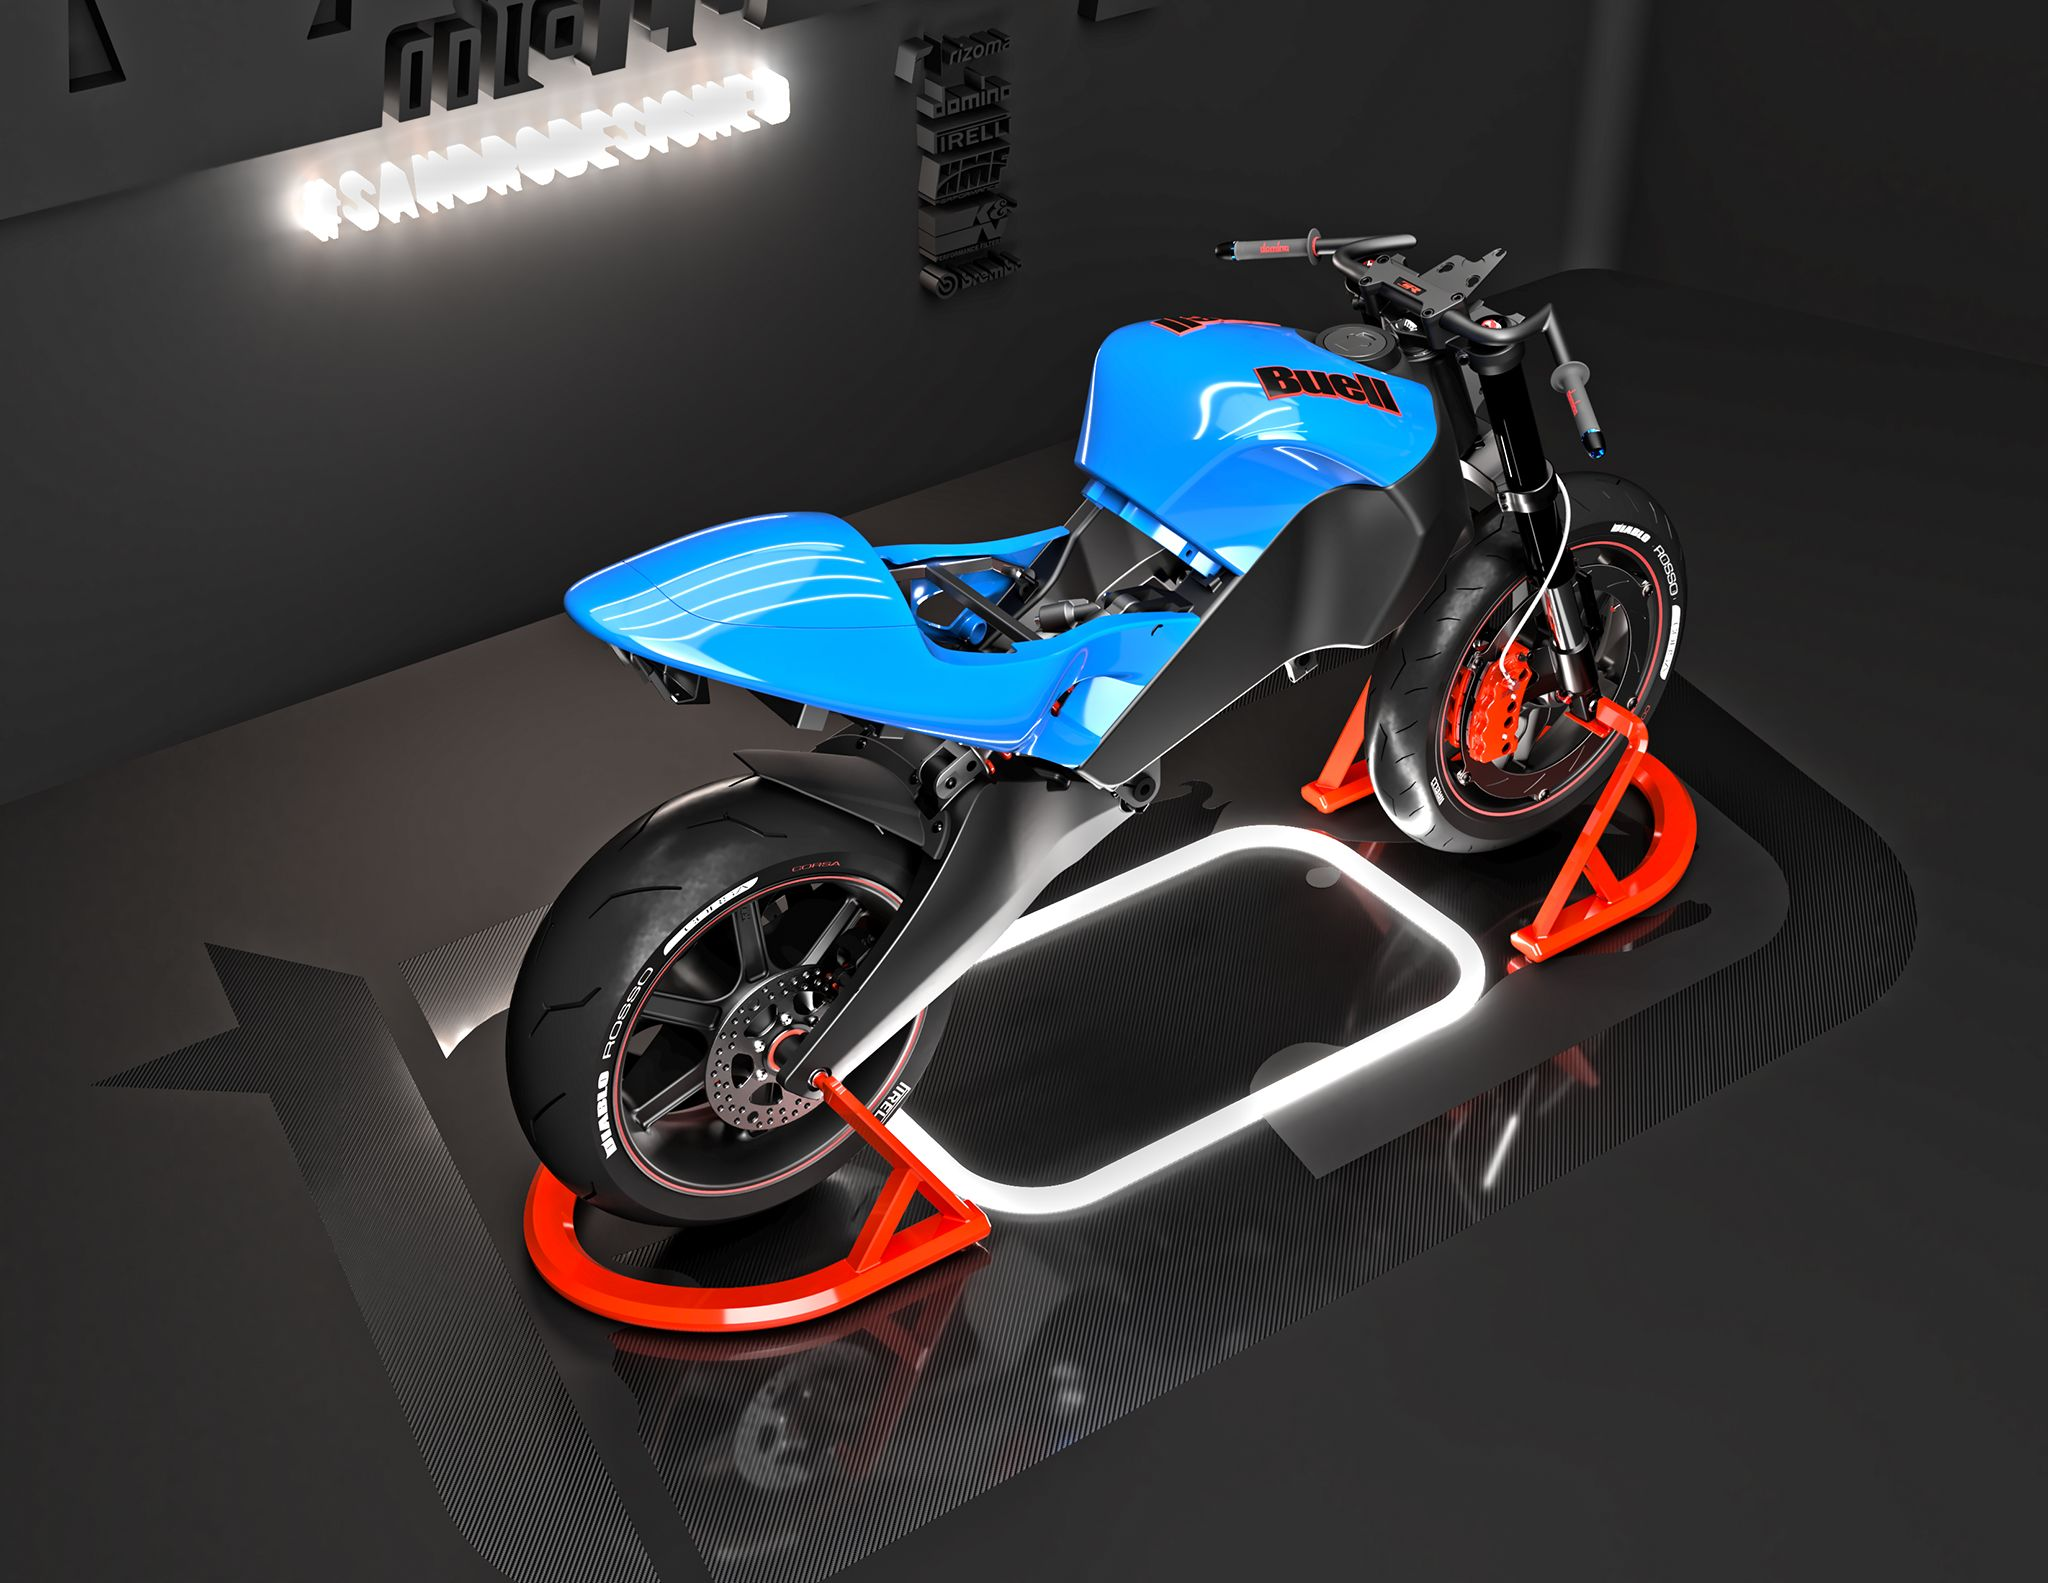 2009-buell-1125cr-next-2019-jul-02-07-10-26am-000-customizedview37051066868-png-3500-3500